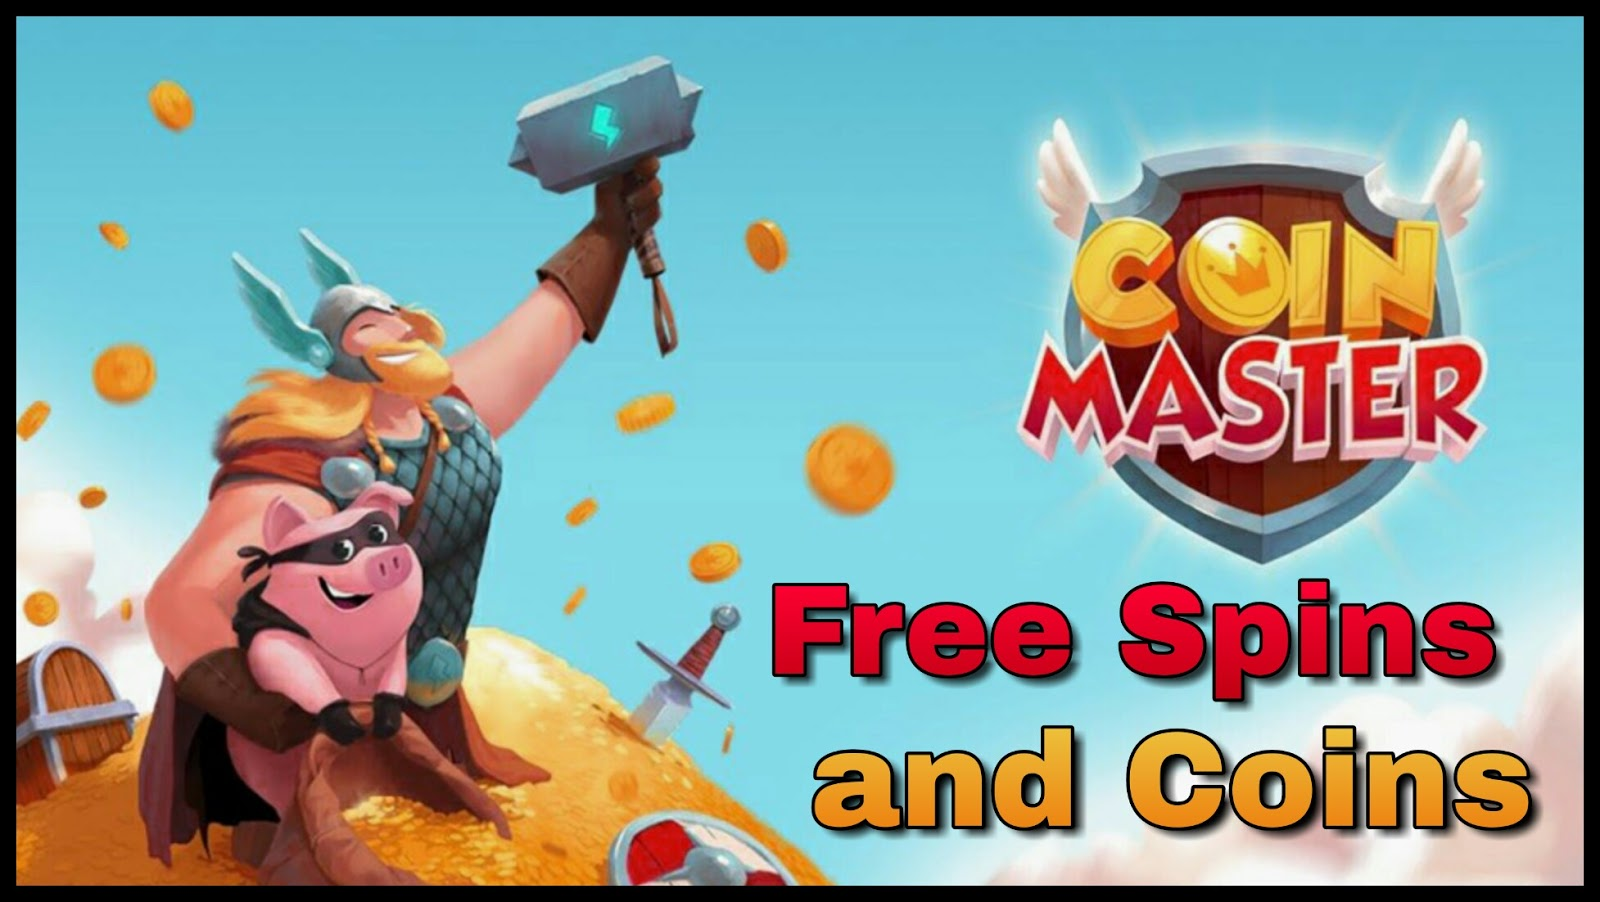 Free coins and spins